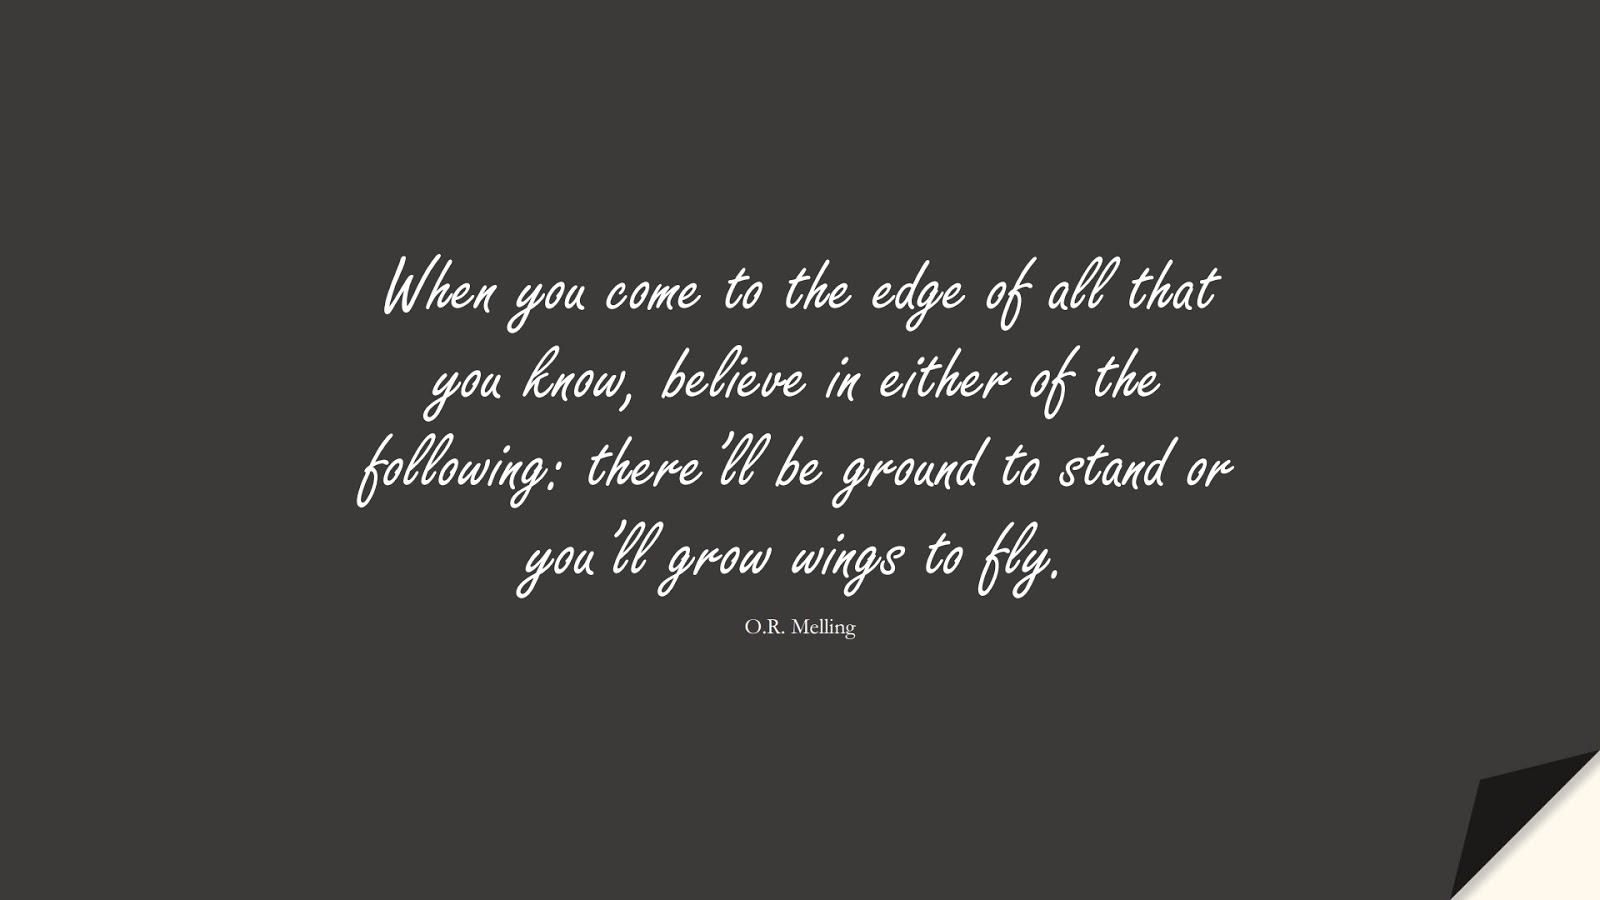 When you come to the edge of all that you know, believe in either of the following: there'll be ground to stand or you'll grow wings to fly. (O.R. Melling);  #LifeQuotes